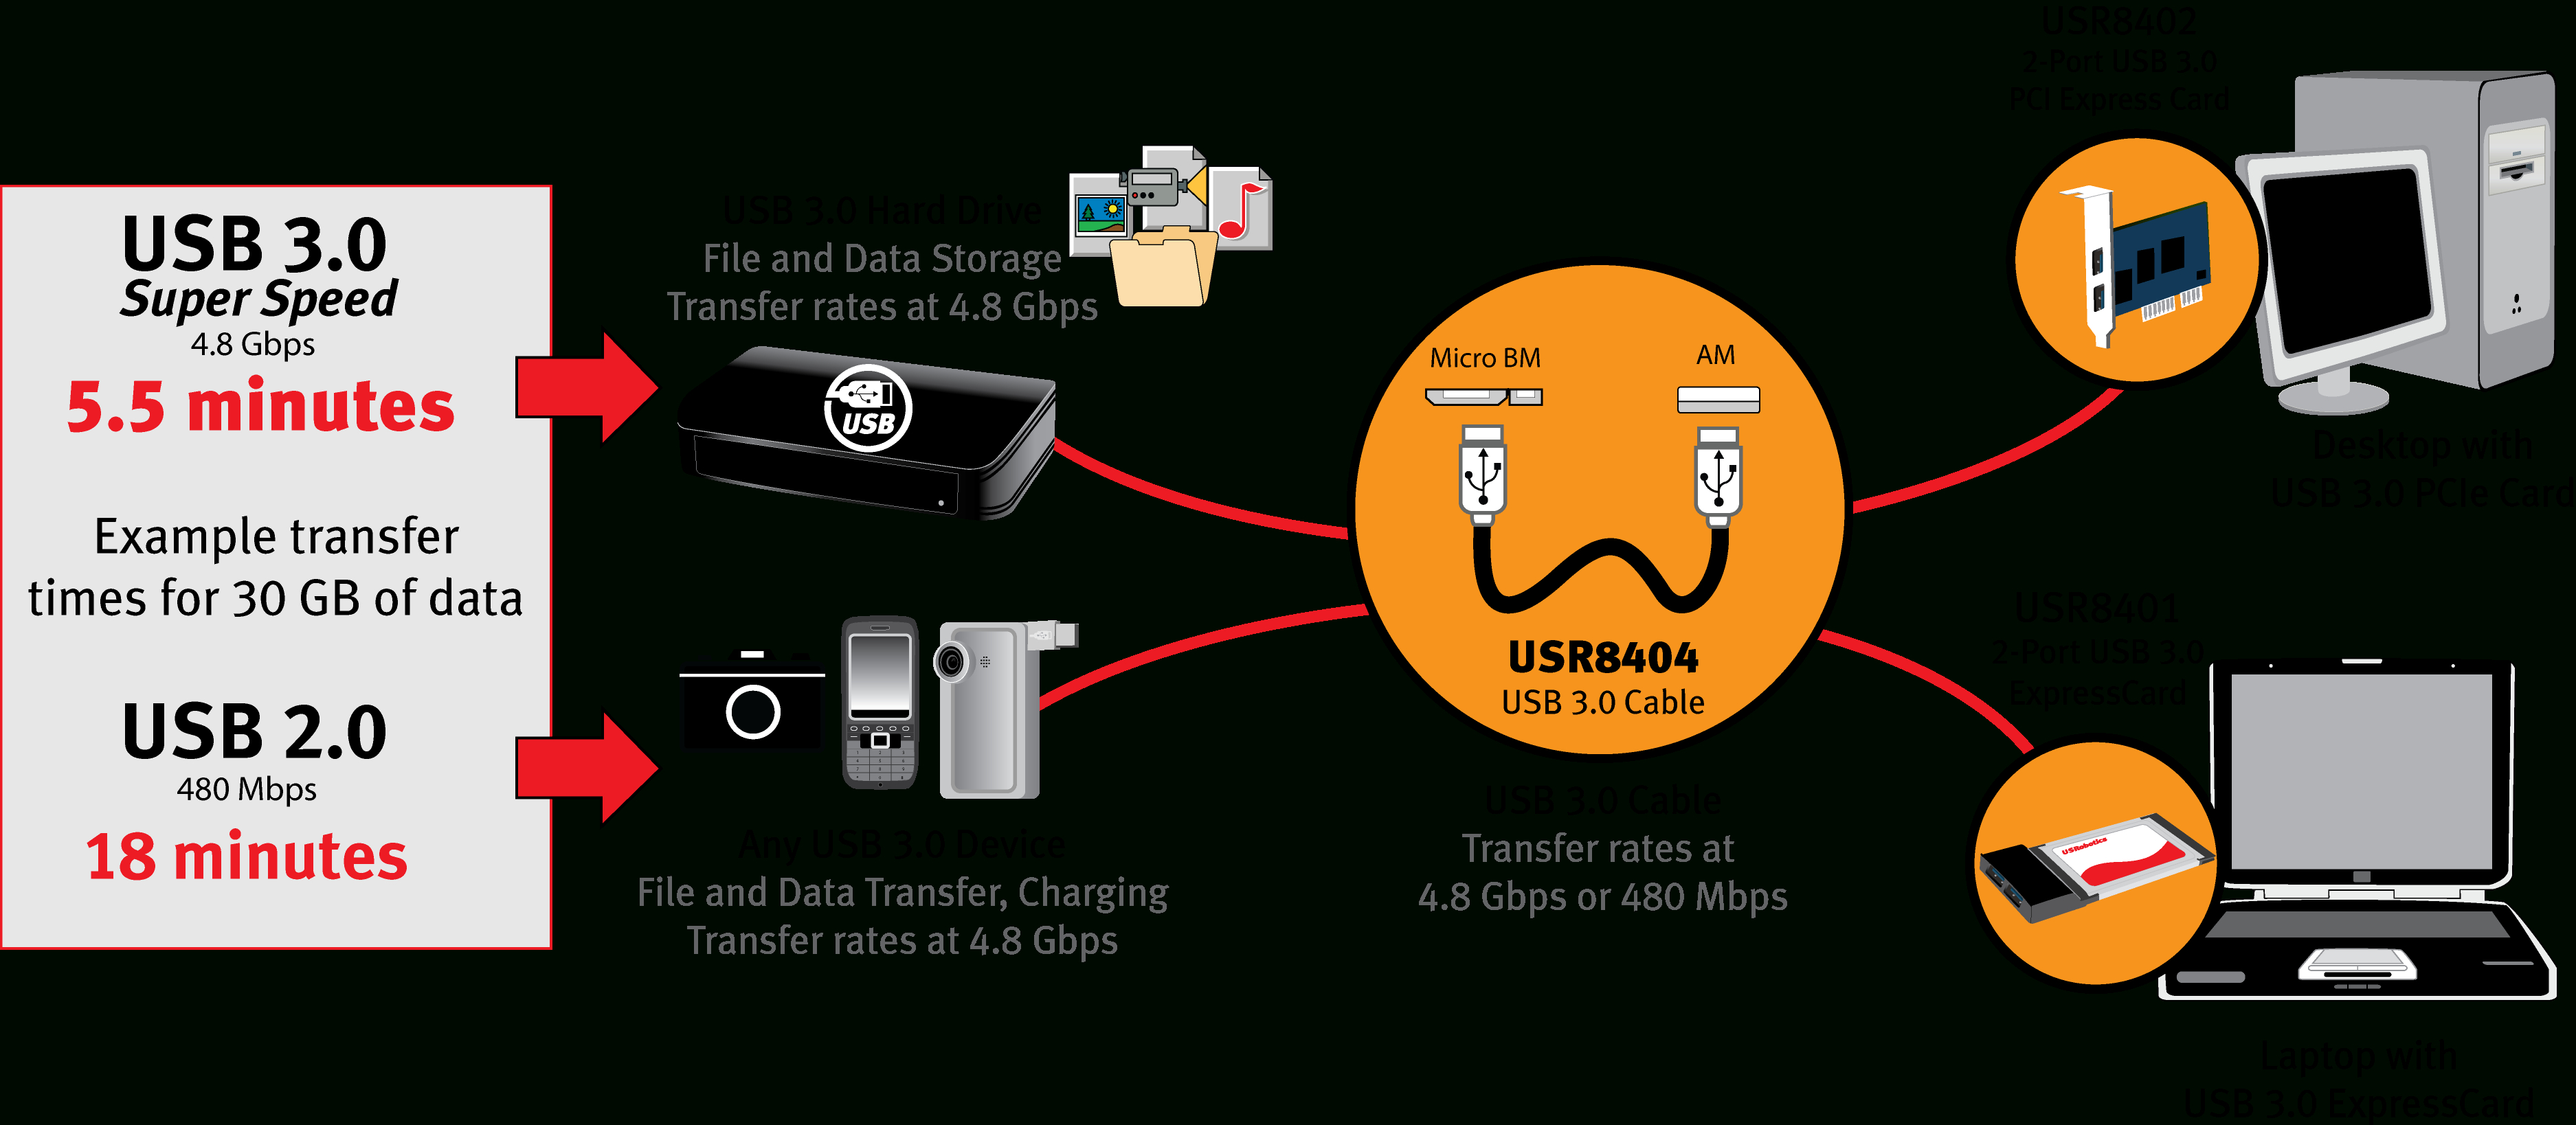 Usb Data Transfer Cable Wiring Diagram | Manual E-Books - Usb Data Transfer Cable Wiring Diagram